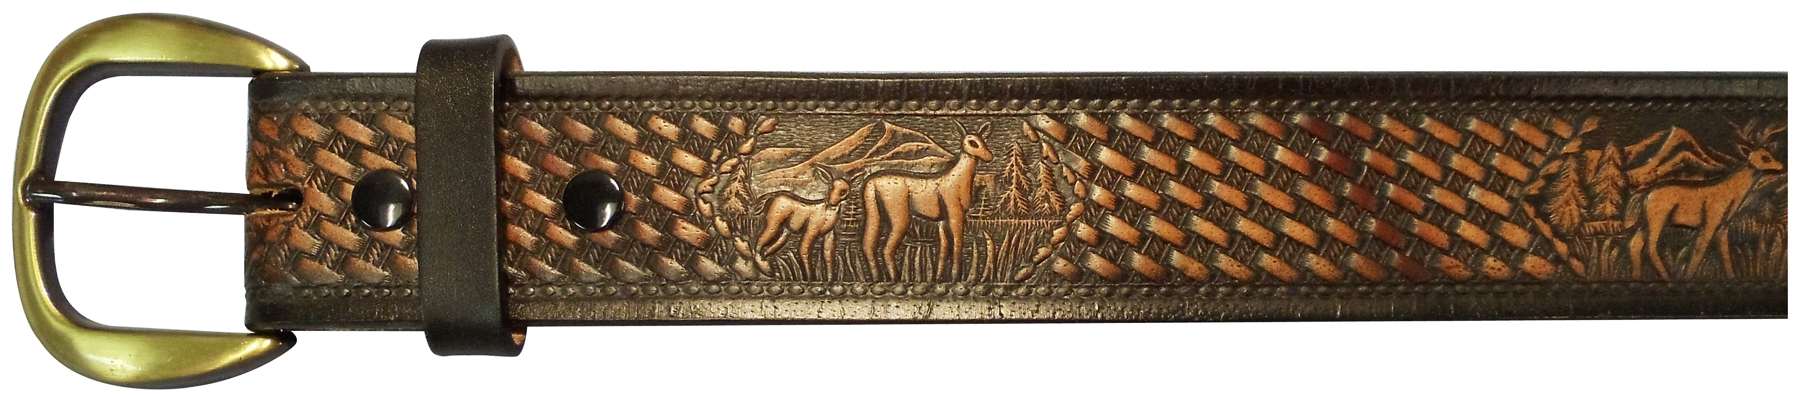 "10610160142 - 42"" Black Leather Belt With Deer Design"